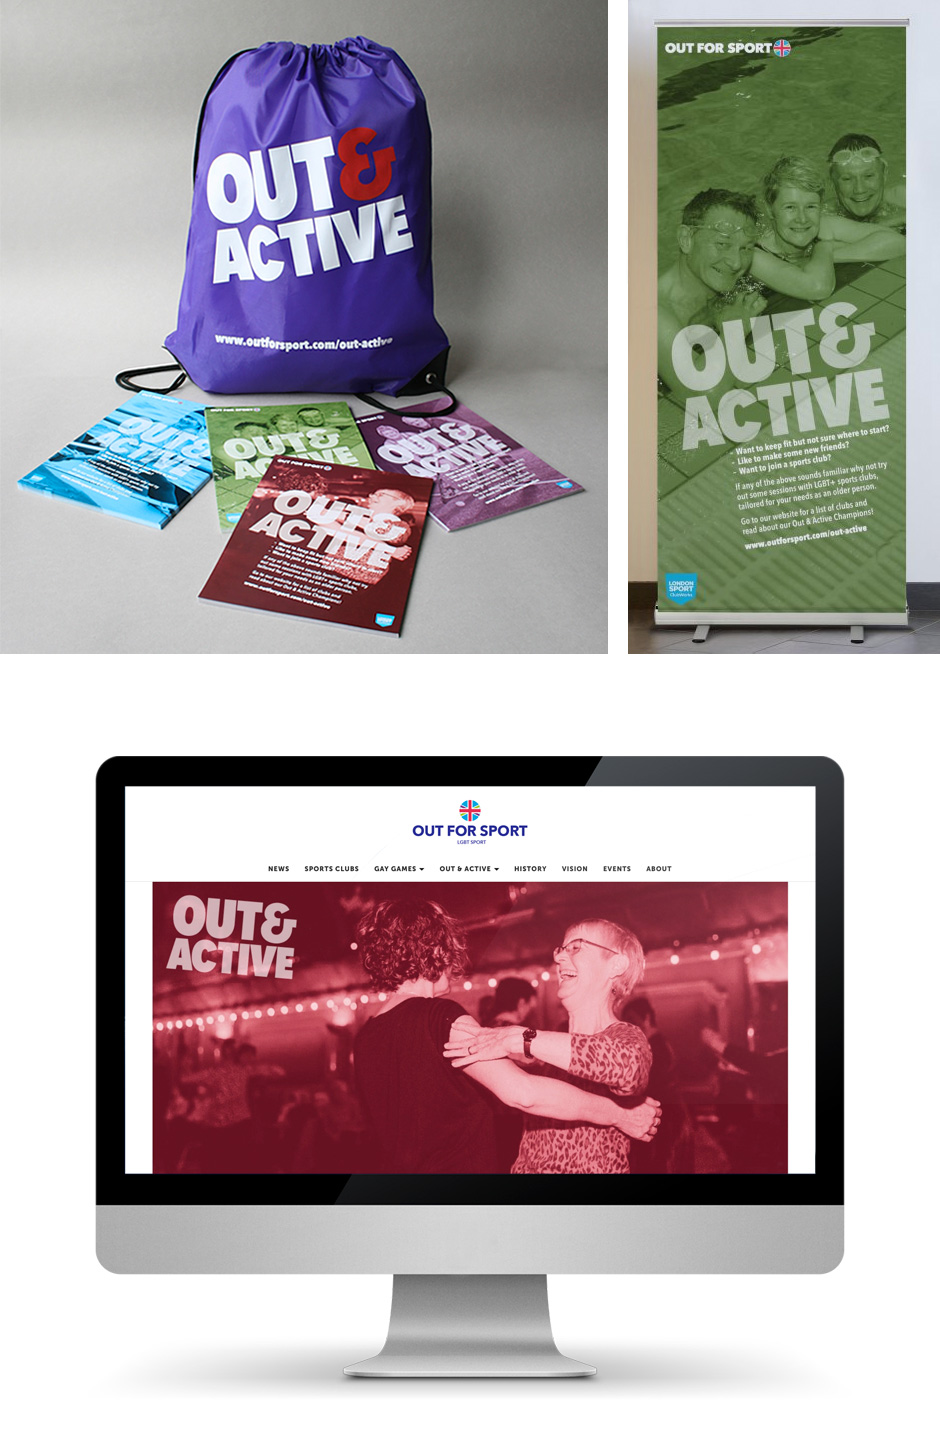 Sports bag, A4 flyers, roller banner and website landing page for the Out & Active campaign